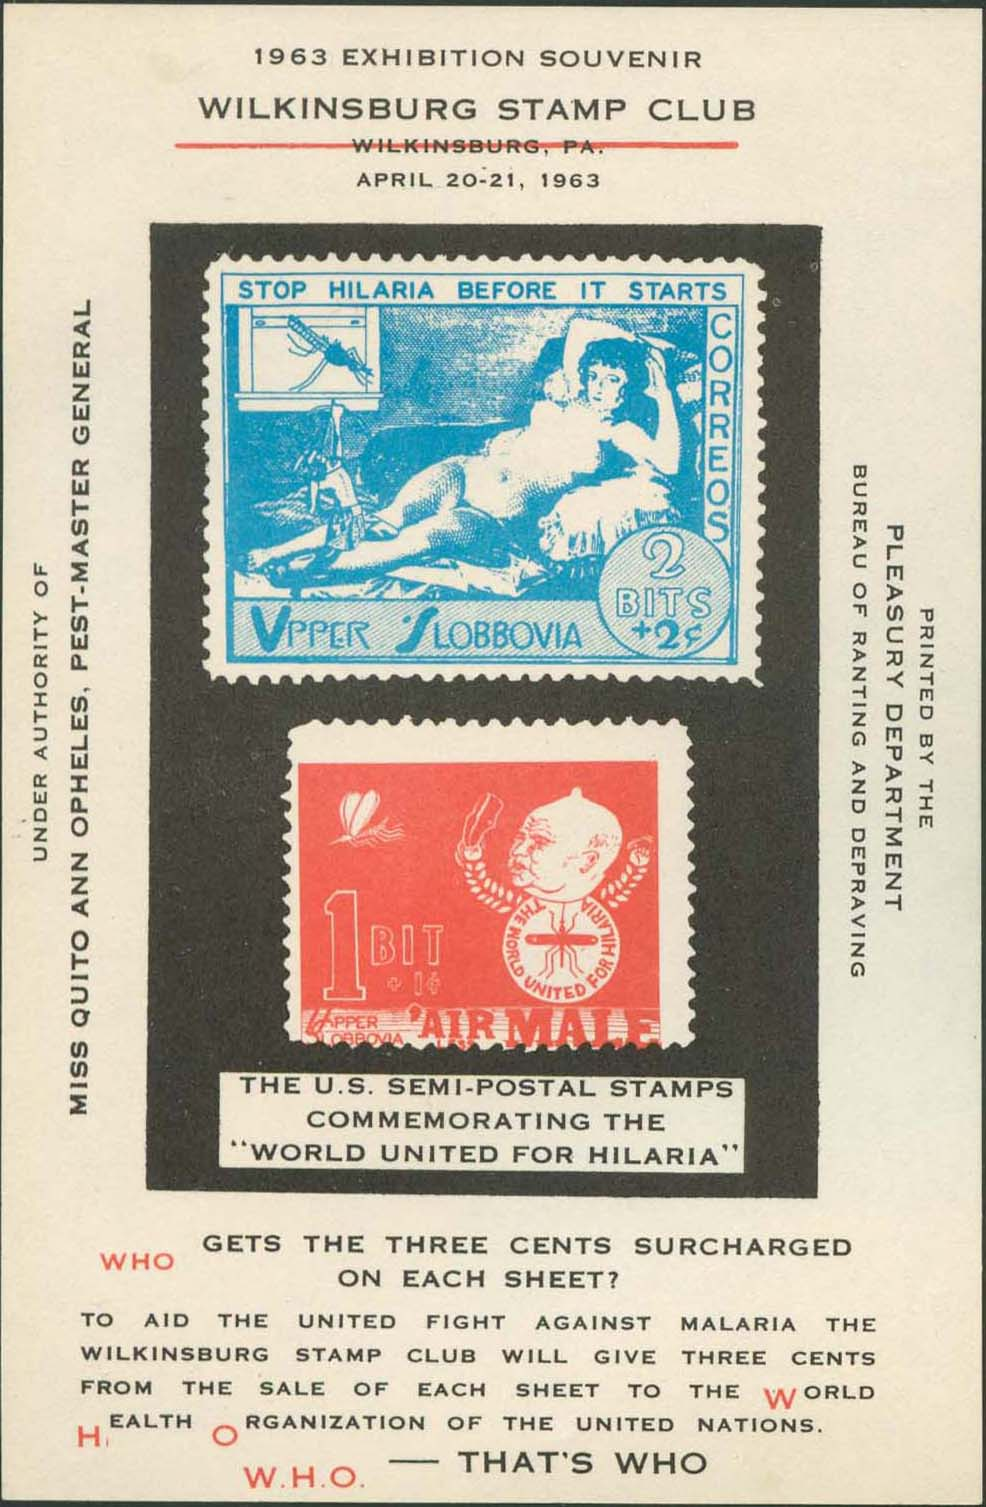 Wilkinsburg Stamp Club Souvenir Sheet<br />Red Shifted Down .16 Centimeters